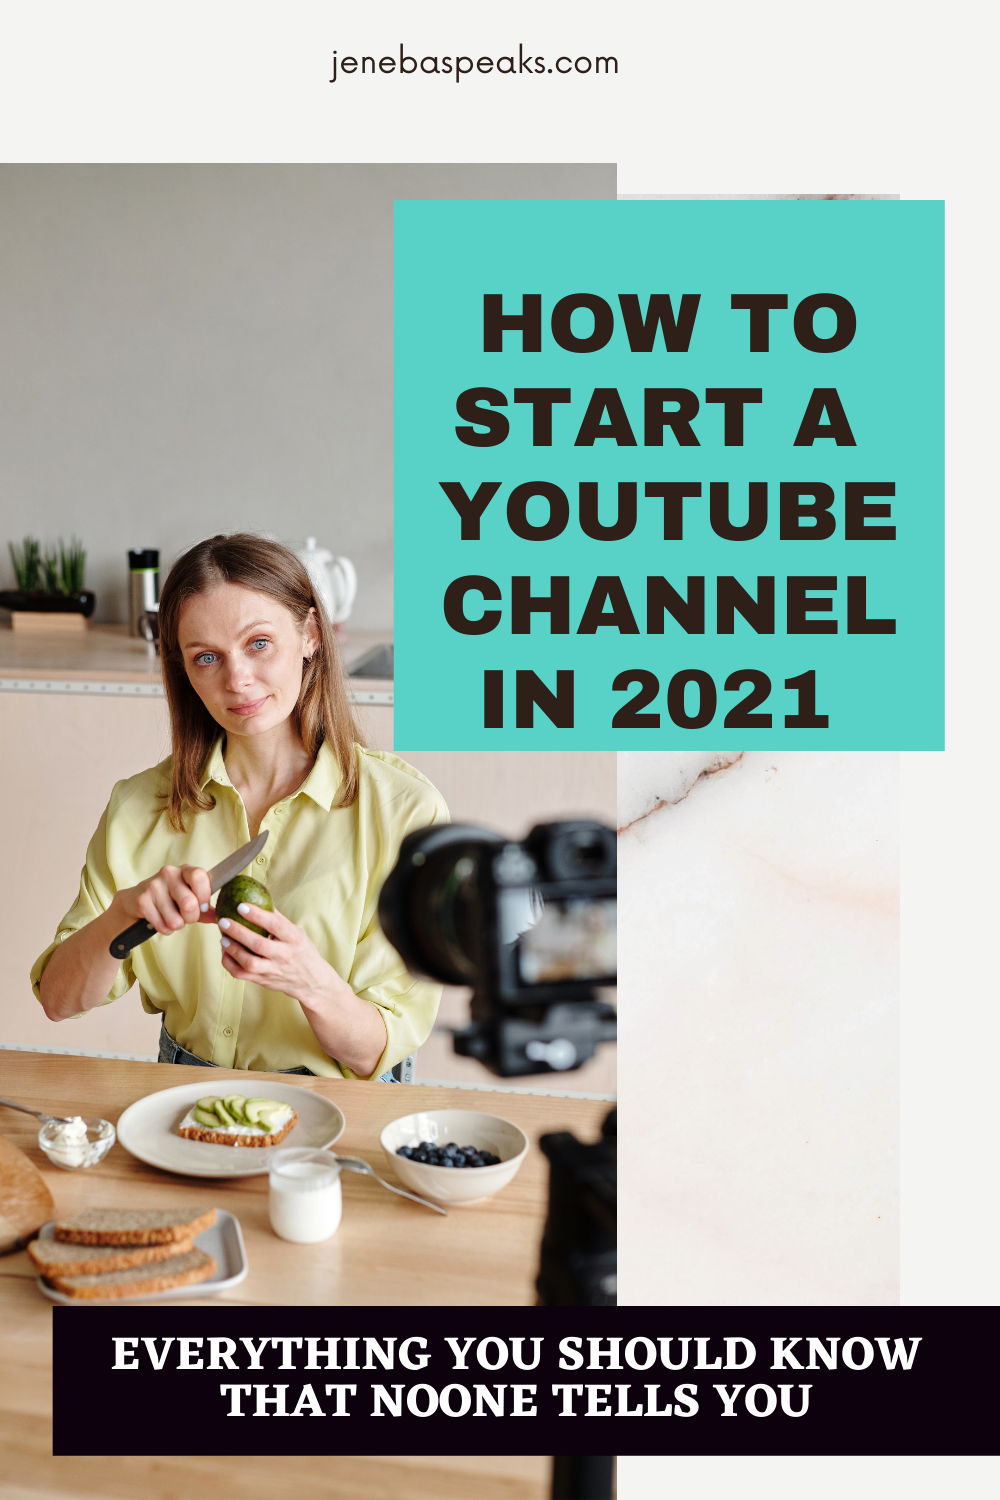 how to start a youtube channel in 2021 infographic